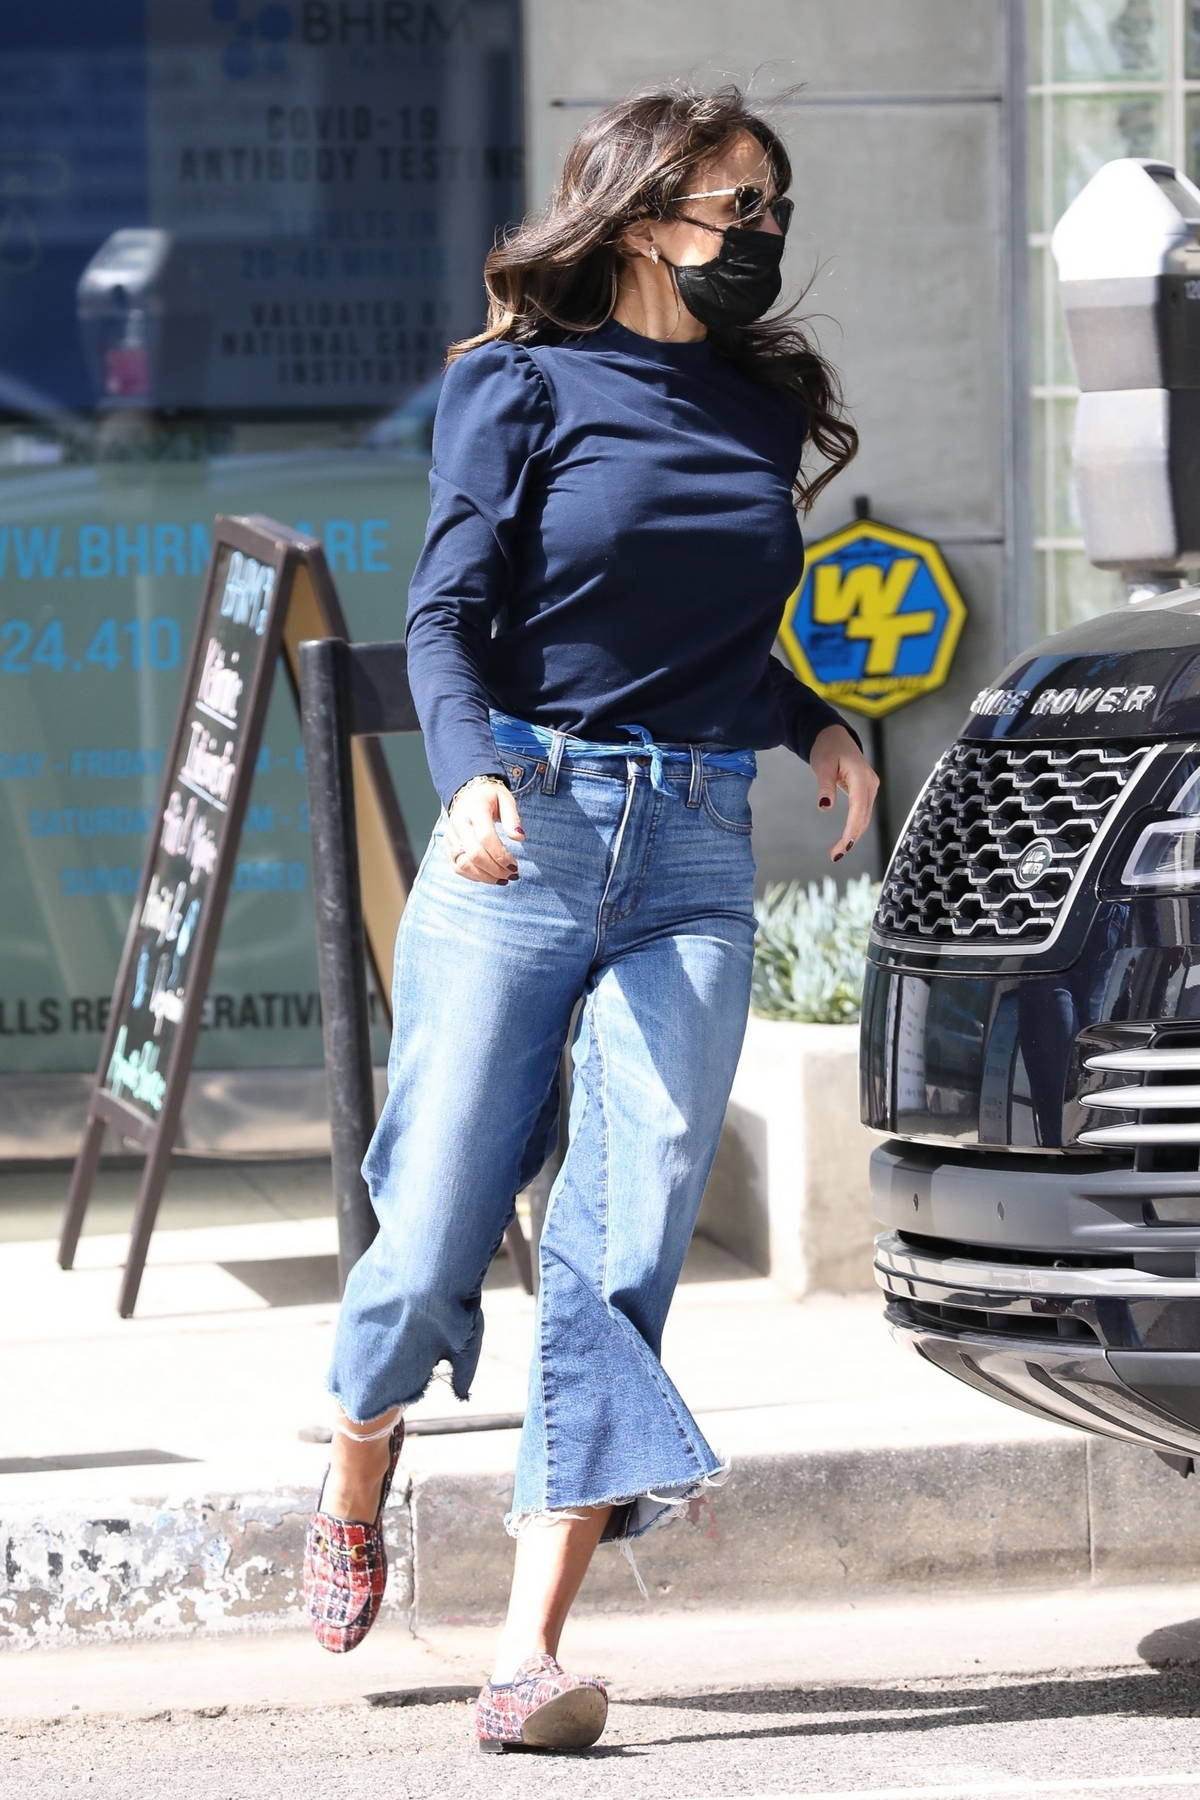 Jordana Brewster wears a blue top and flared jeans while running errands around town in Los Angeles